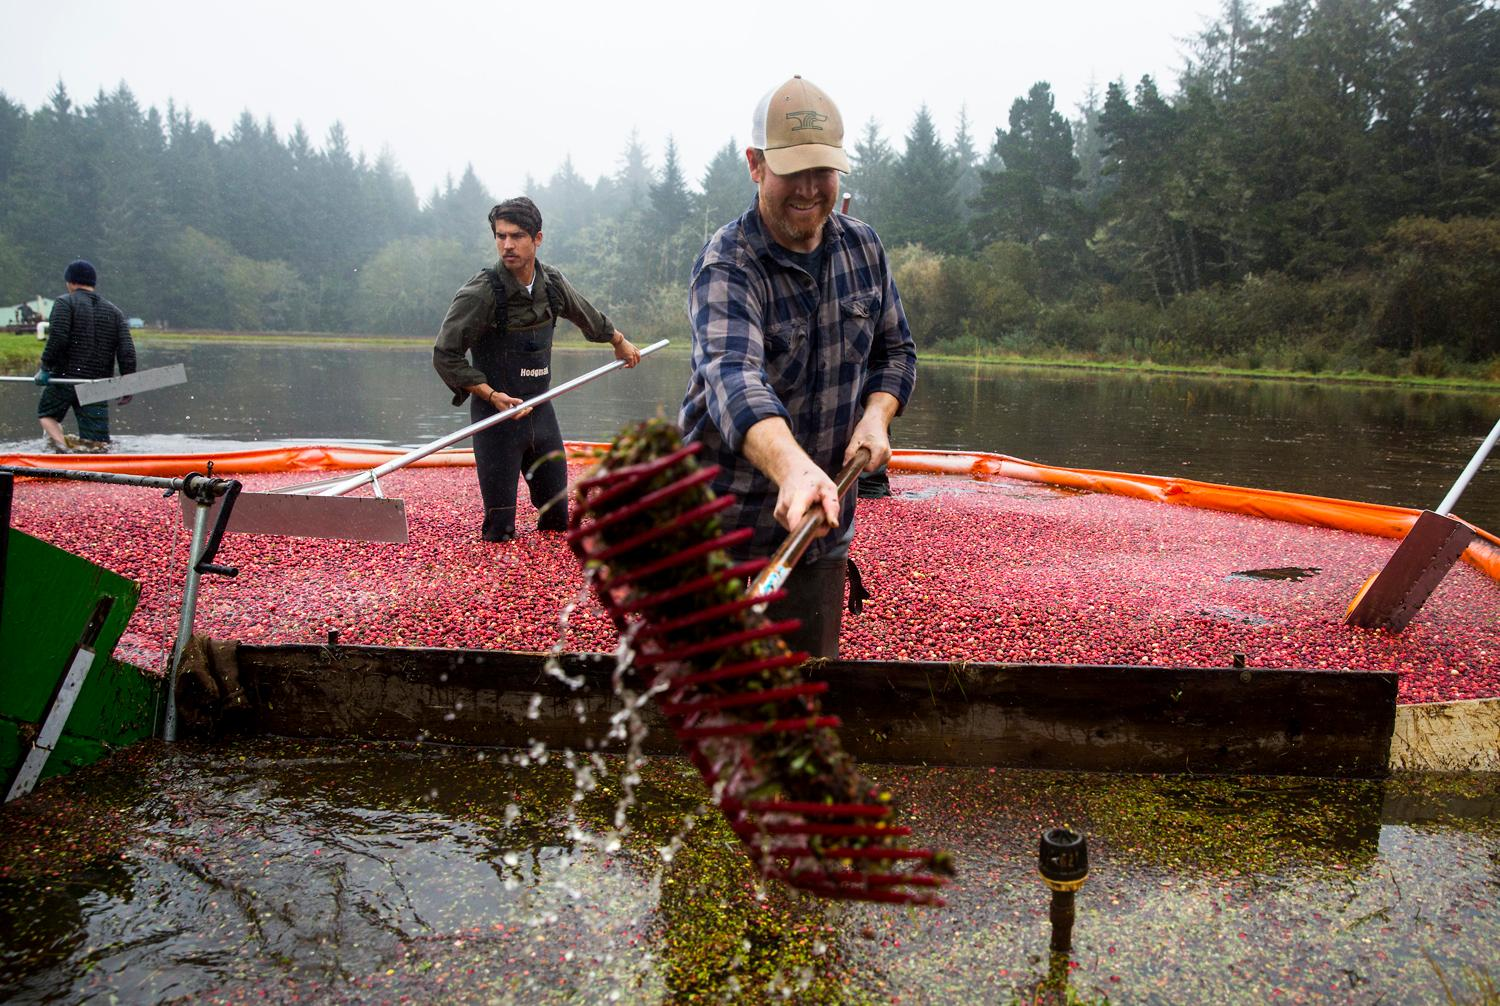 Brady Turner, co-owner of the local restaurant Pickled Fish, uses a rake to scoop plant debris from the floating cranberries during the annual harvest at Starvation Alley Farms. Turner's restaurant utilizes the farms cranberries and some of their cocktails and dishes. (Sy Bean / Seattle Refined)